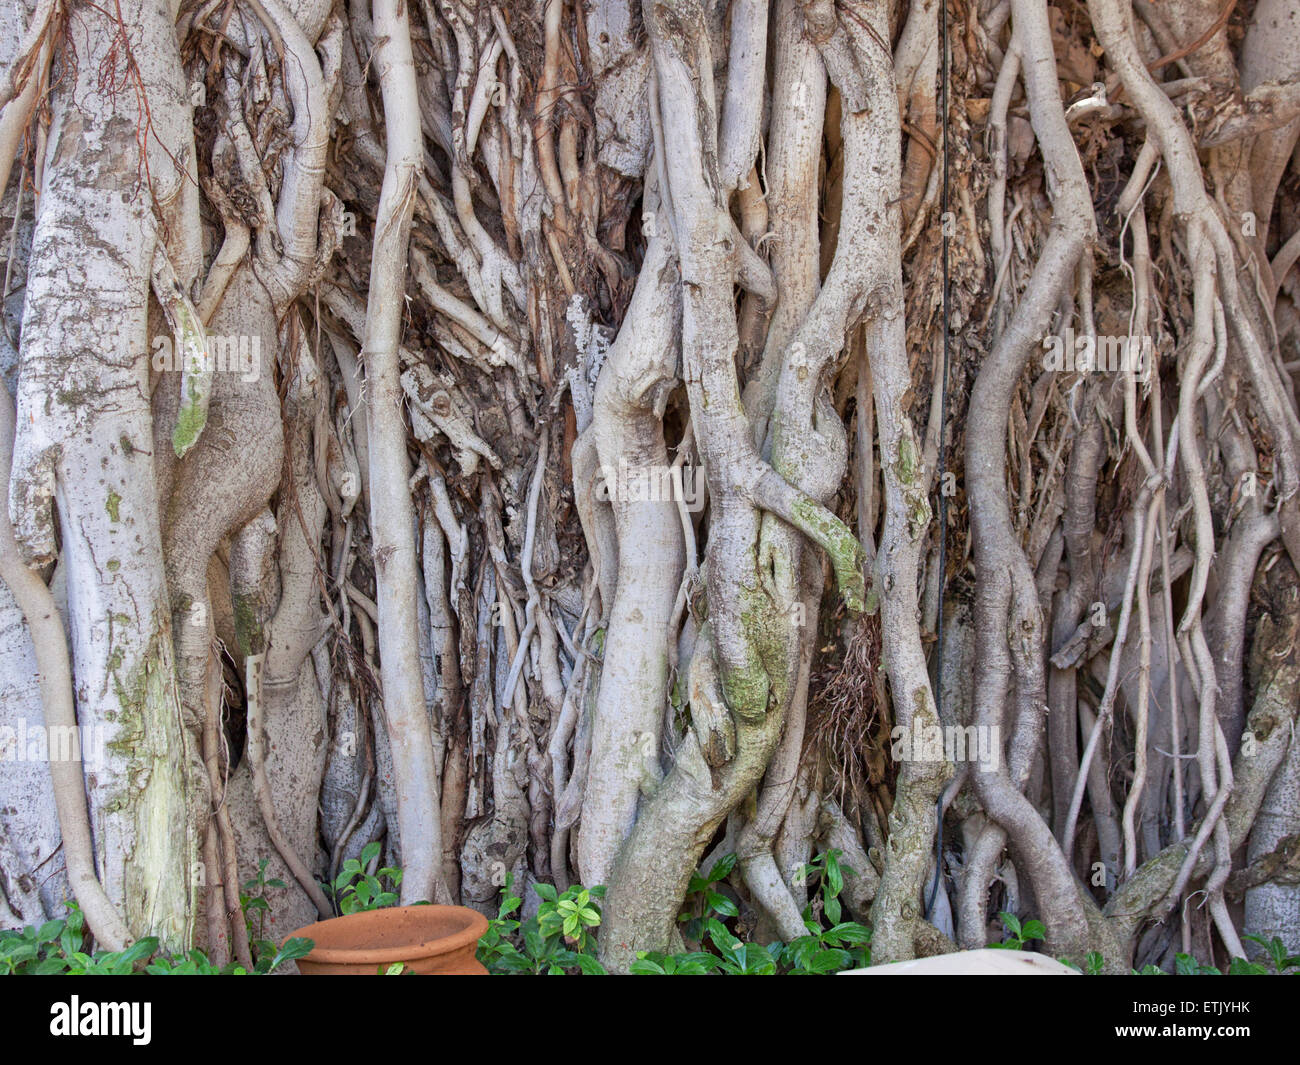 Banyan Tree (Ficus benghalensis) at a roadside in Rajasthan, India. The native tree is considered sacred in Hinduism - Stock Image